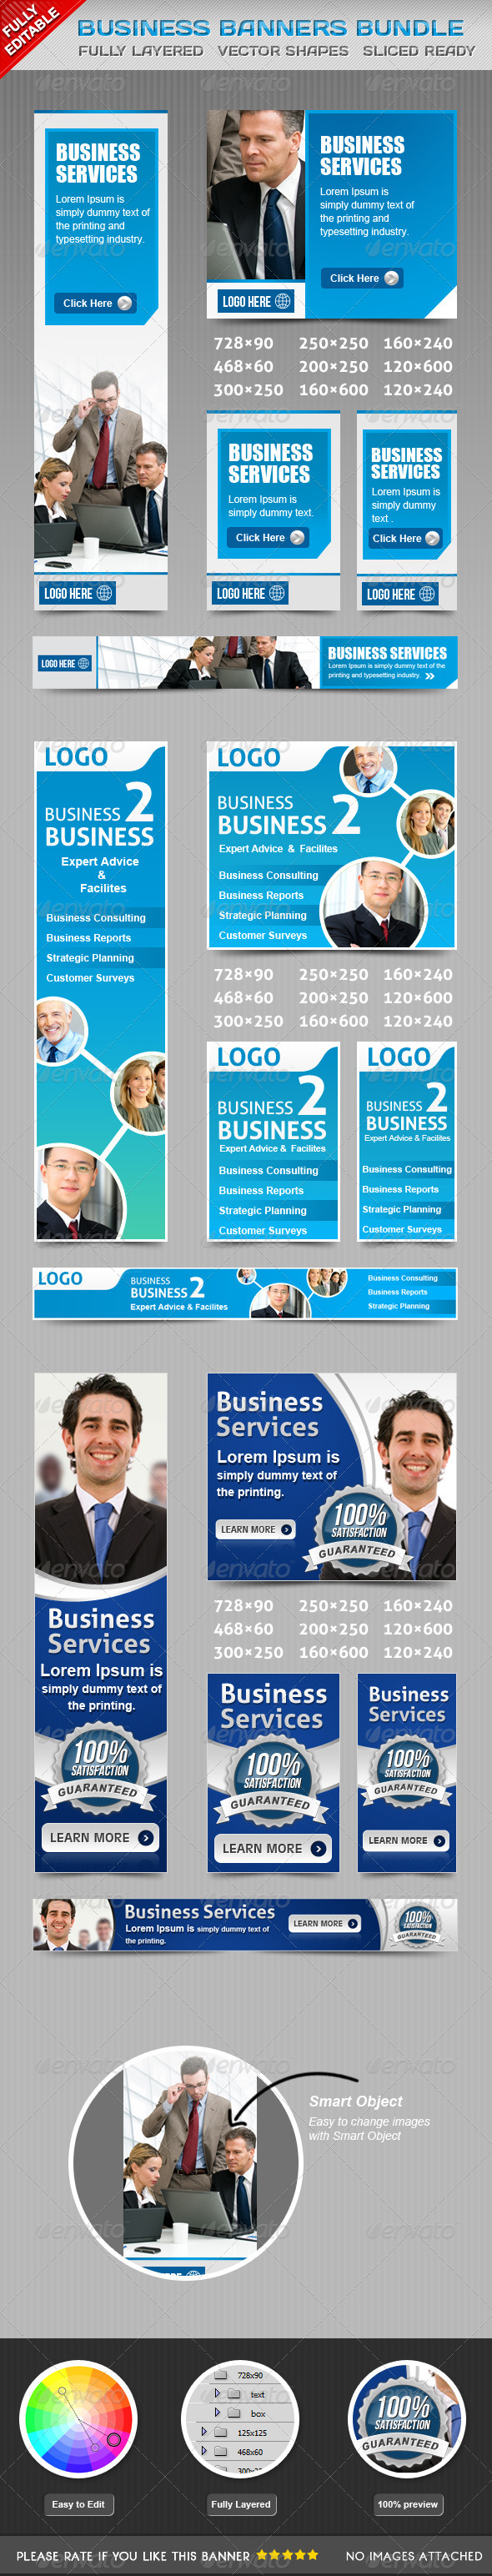 GraphicRiver Business Banners Bundle Vol 1 5382173